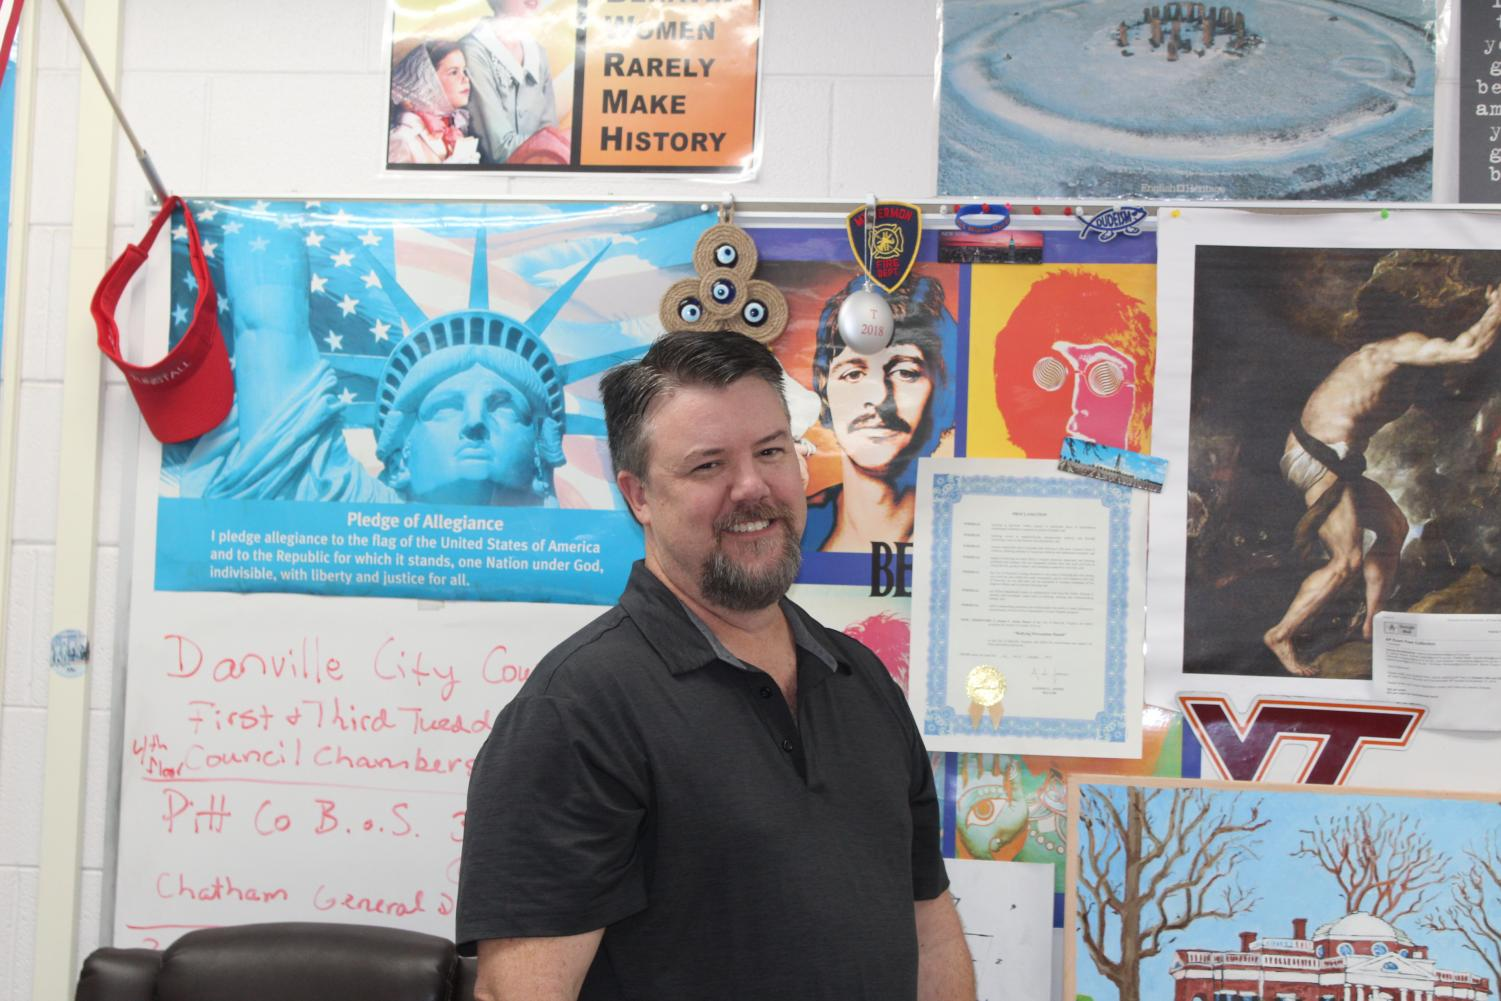 Social studies teacher Patrick Touart laughing while sporting his signature goatee.